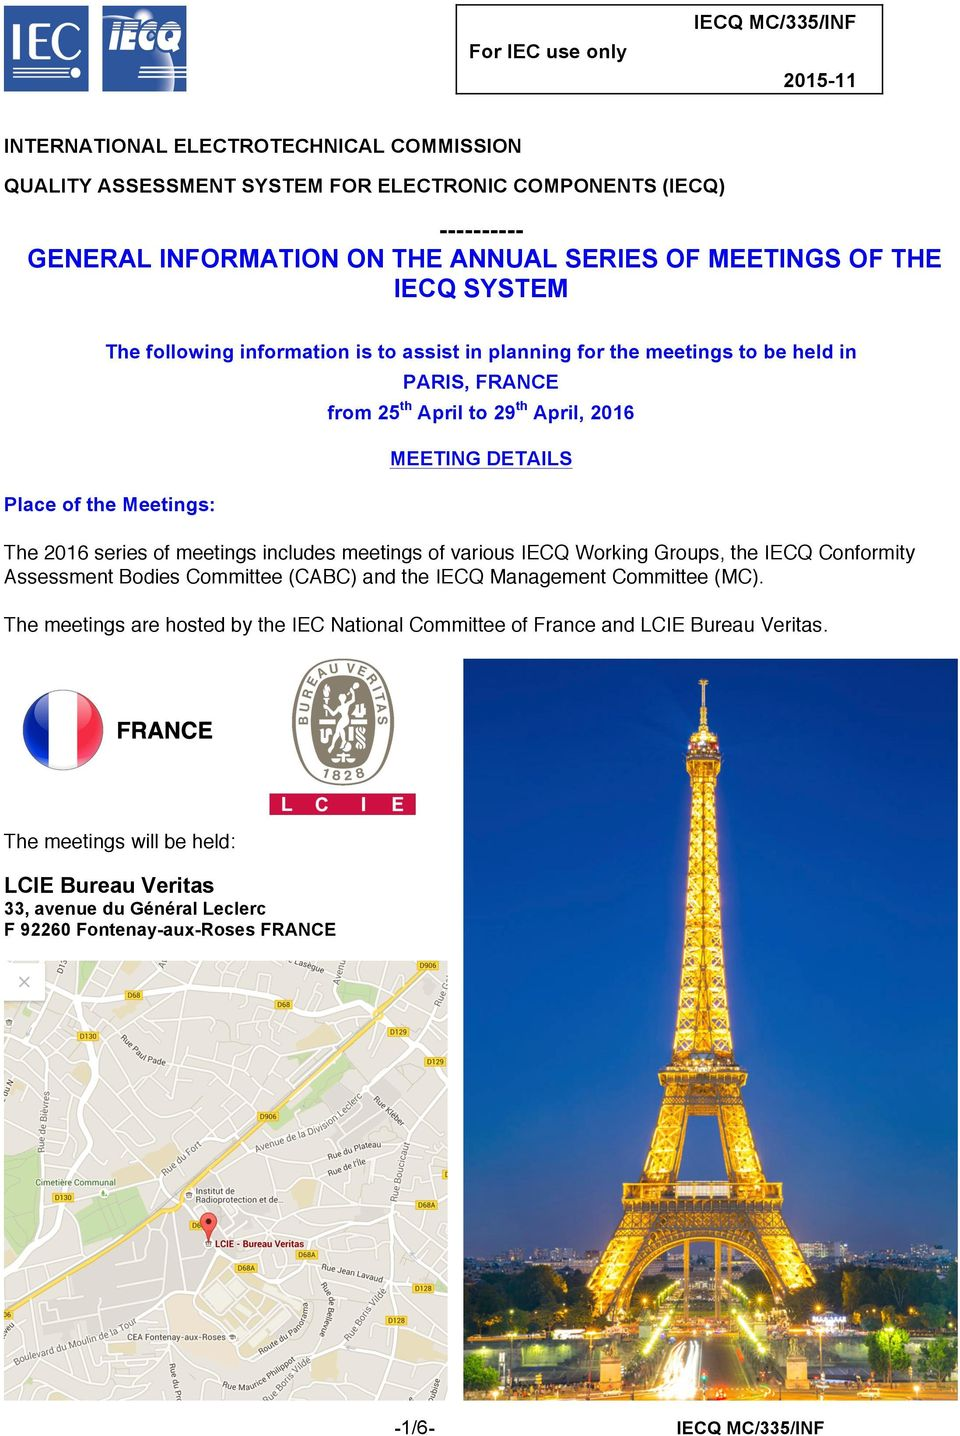 Place of the Meetings: The 2016 series of meetings includes meetings of various IECQ Working Groups, the IECQ Conformity Assessment Bodies Committee (CABC) and the IECQ Management